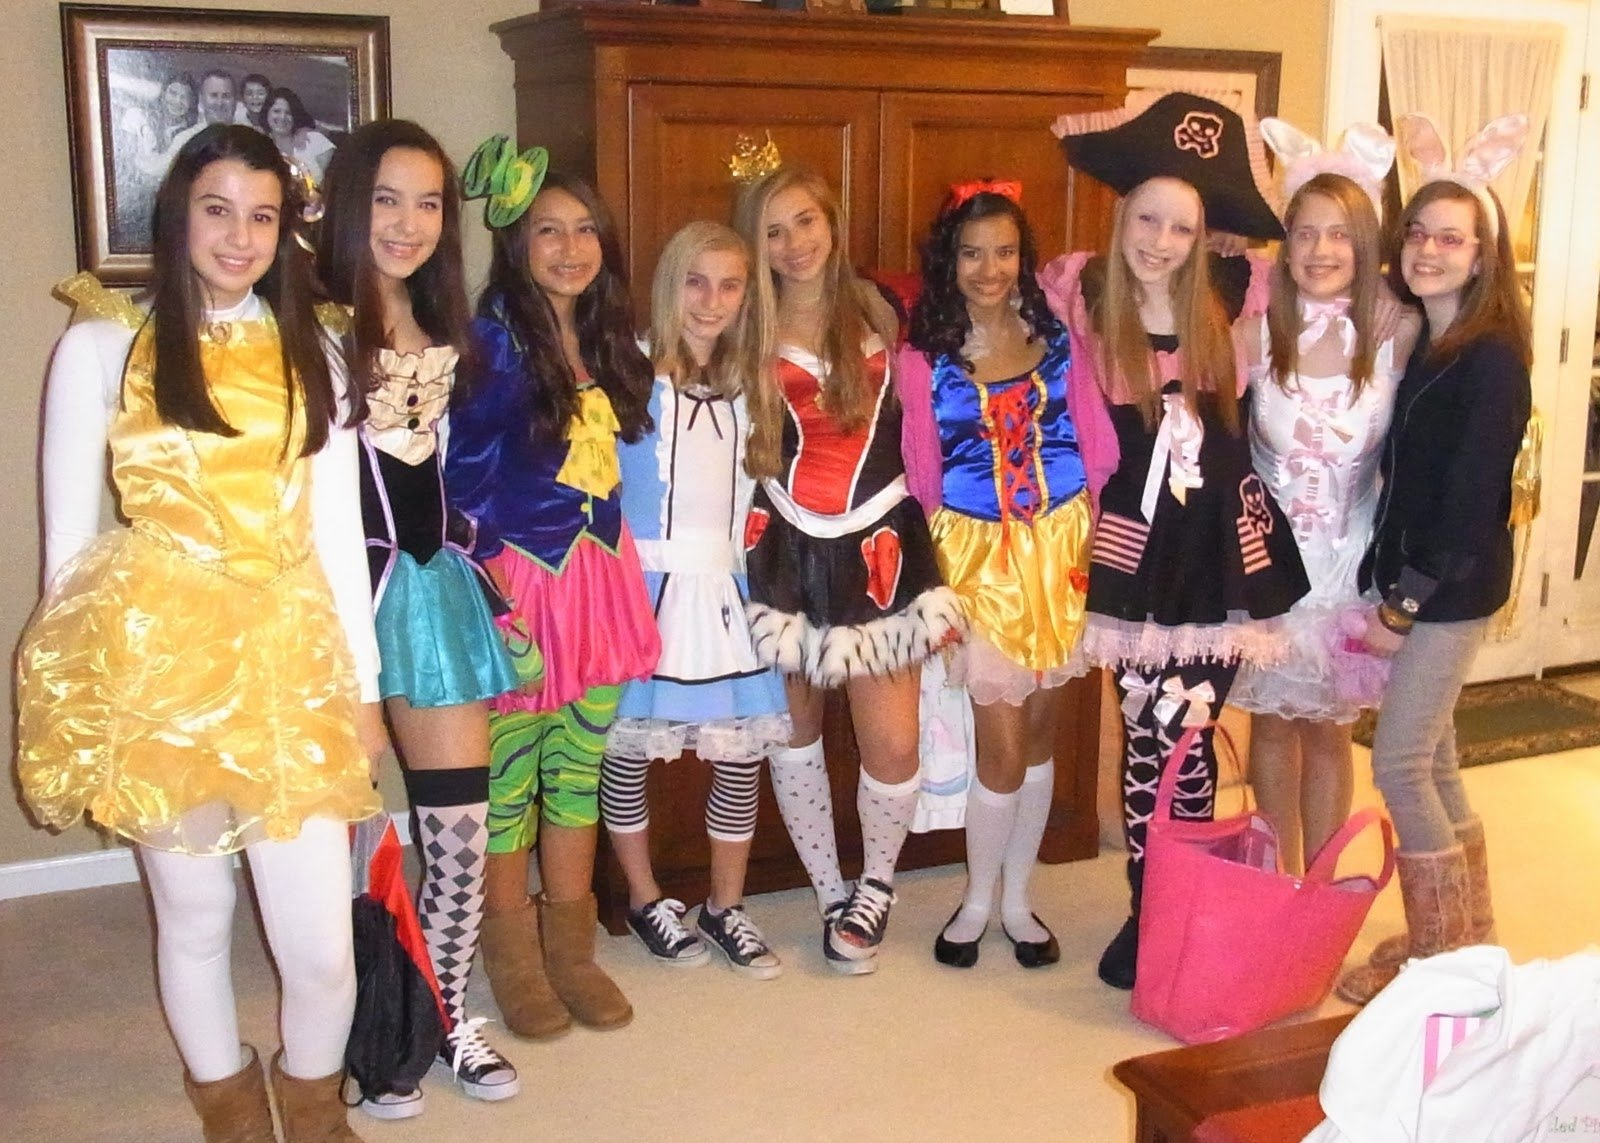 10 Lovable Creative Group Halloween Costume Ideas pinflankkks on cool halloween outfits pinterest 6 2020